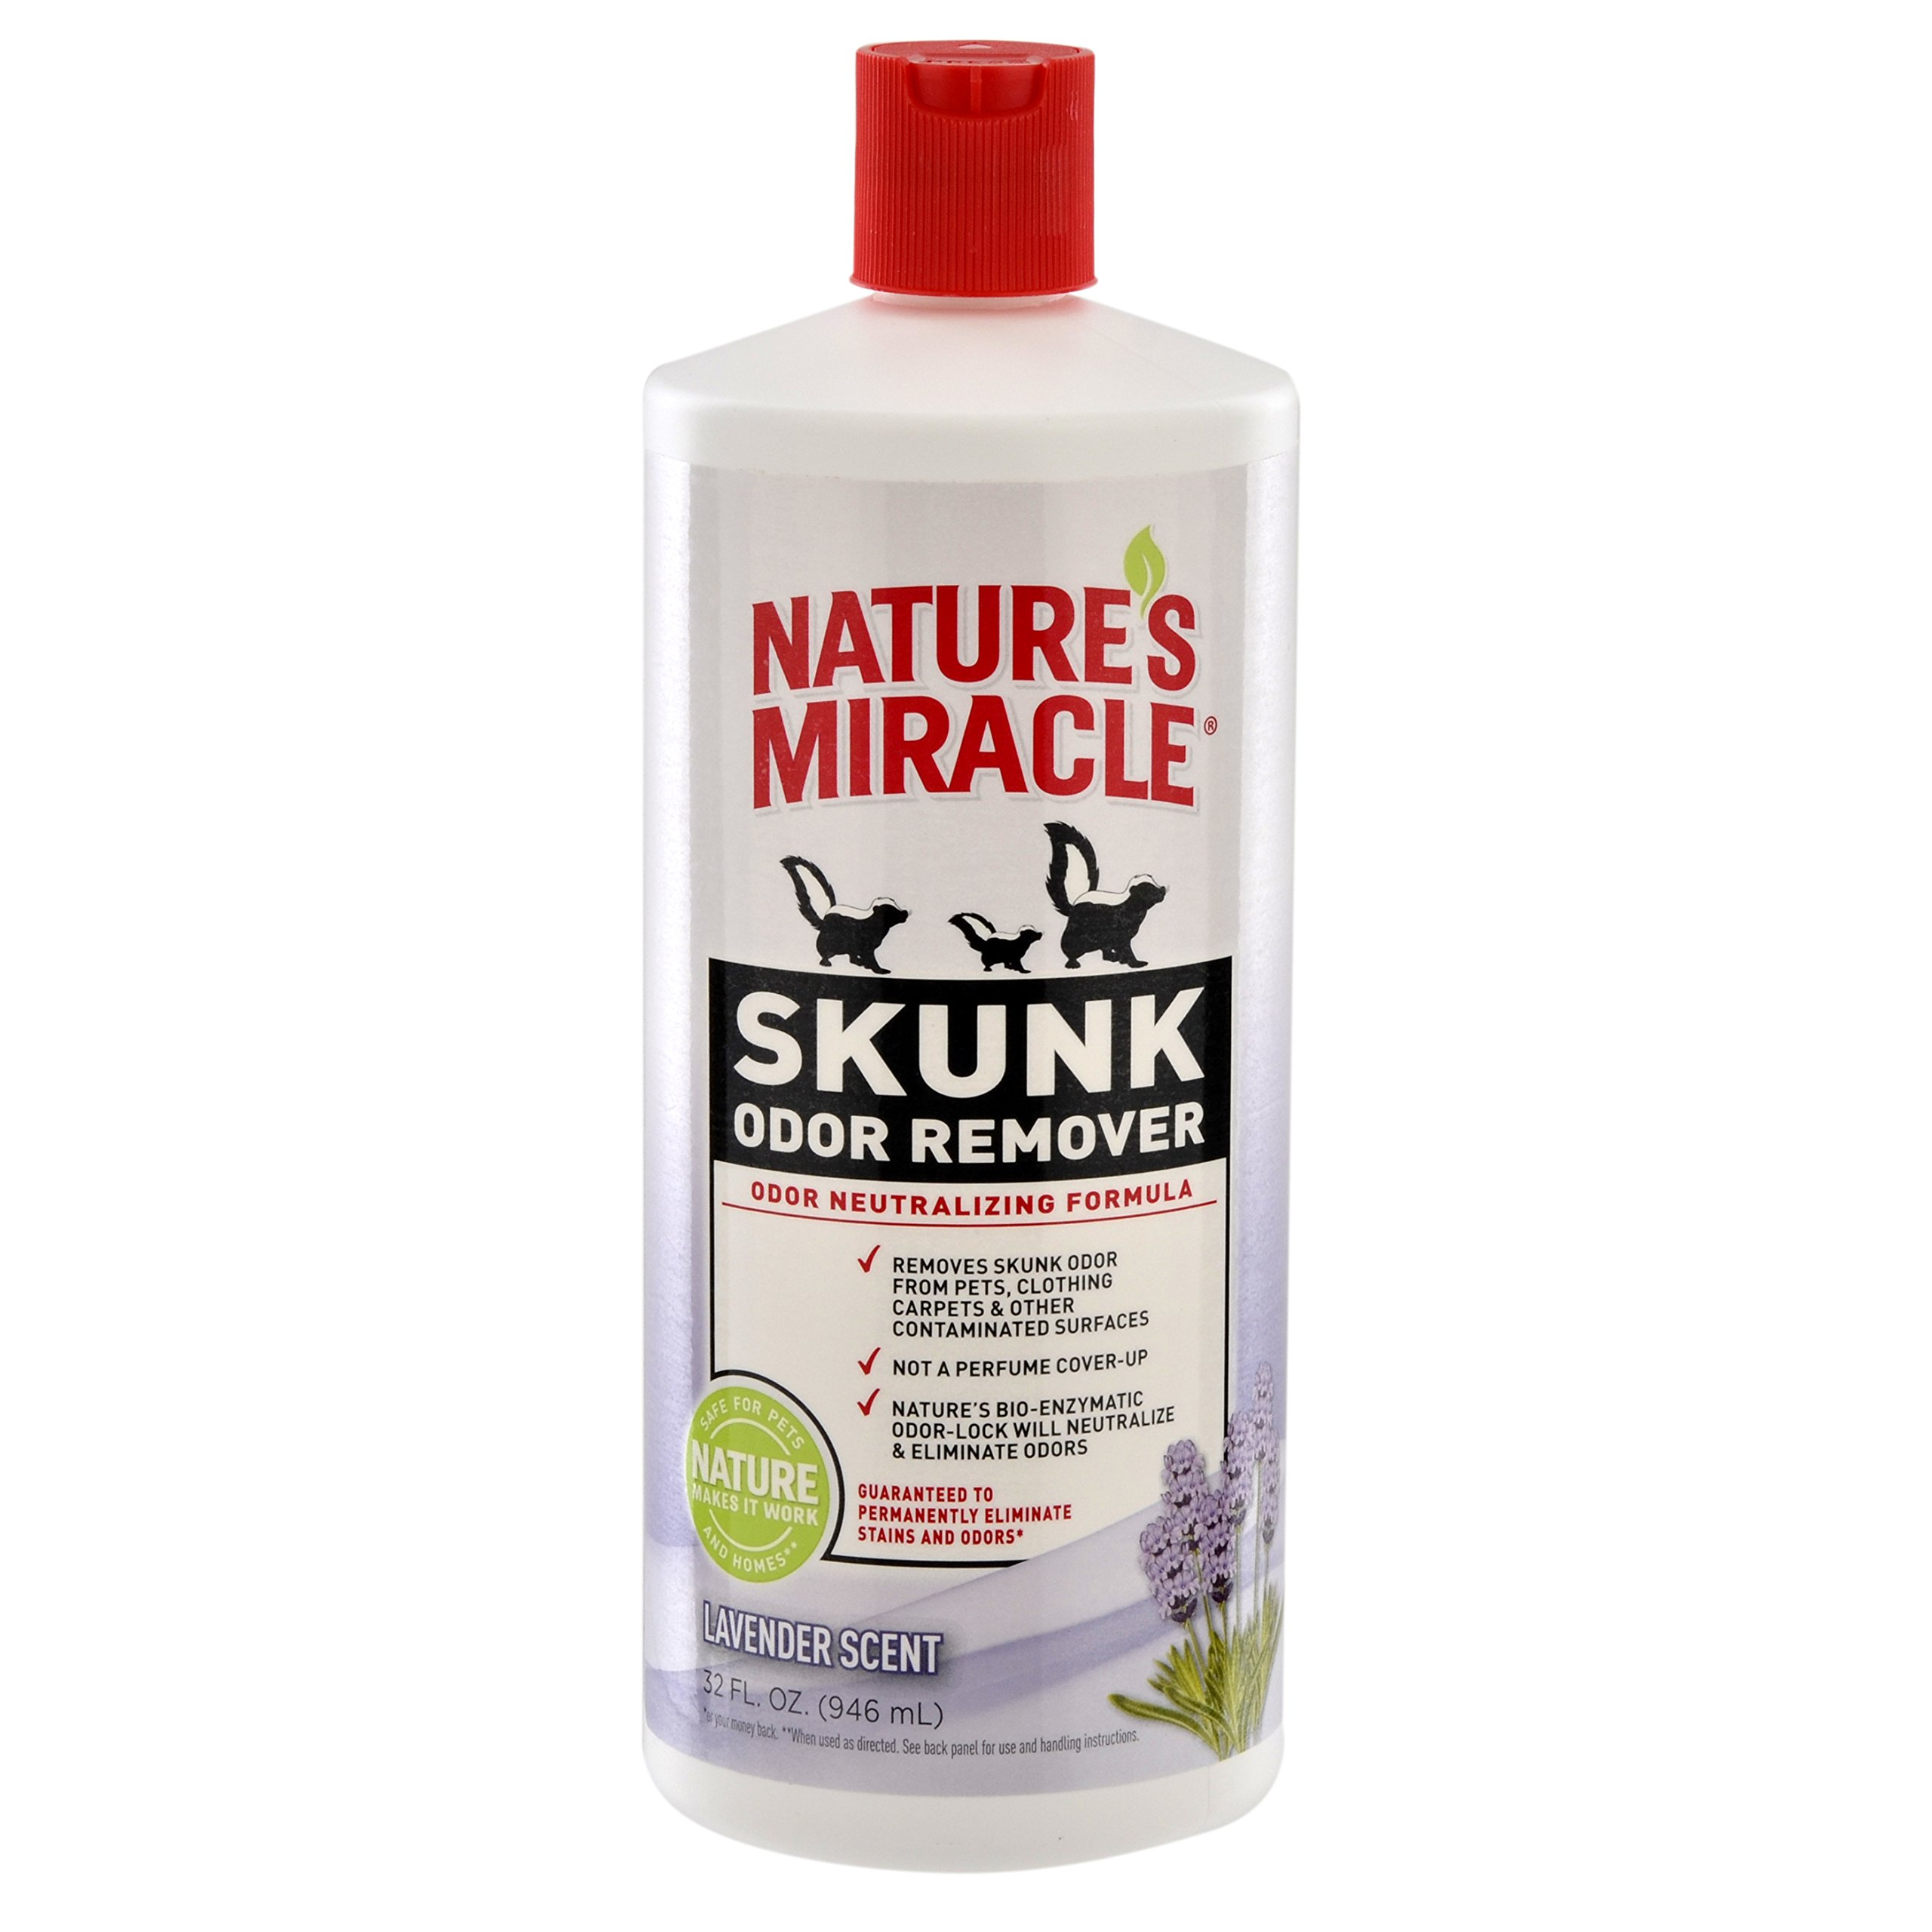 Nature's Miracle Skunk Odor Remover, Lavender Scent, 32 fl. oz.